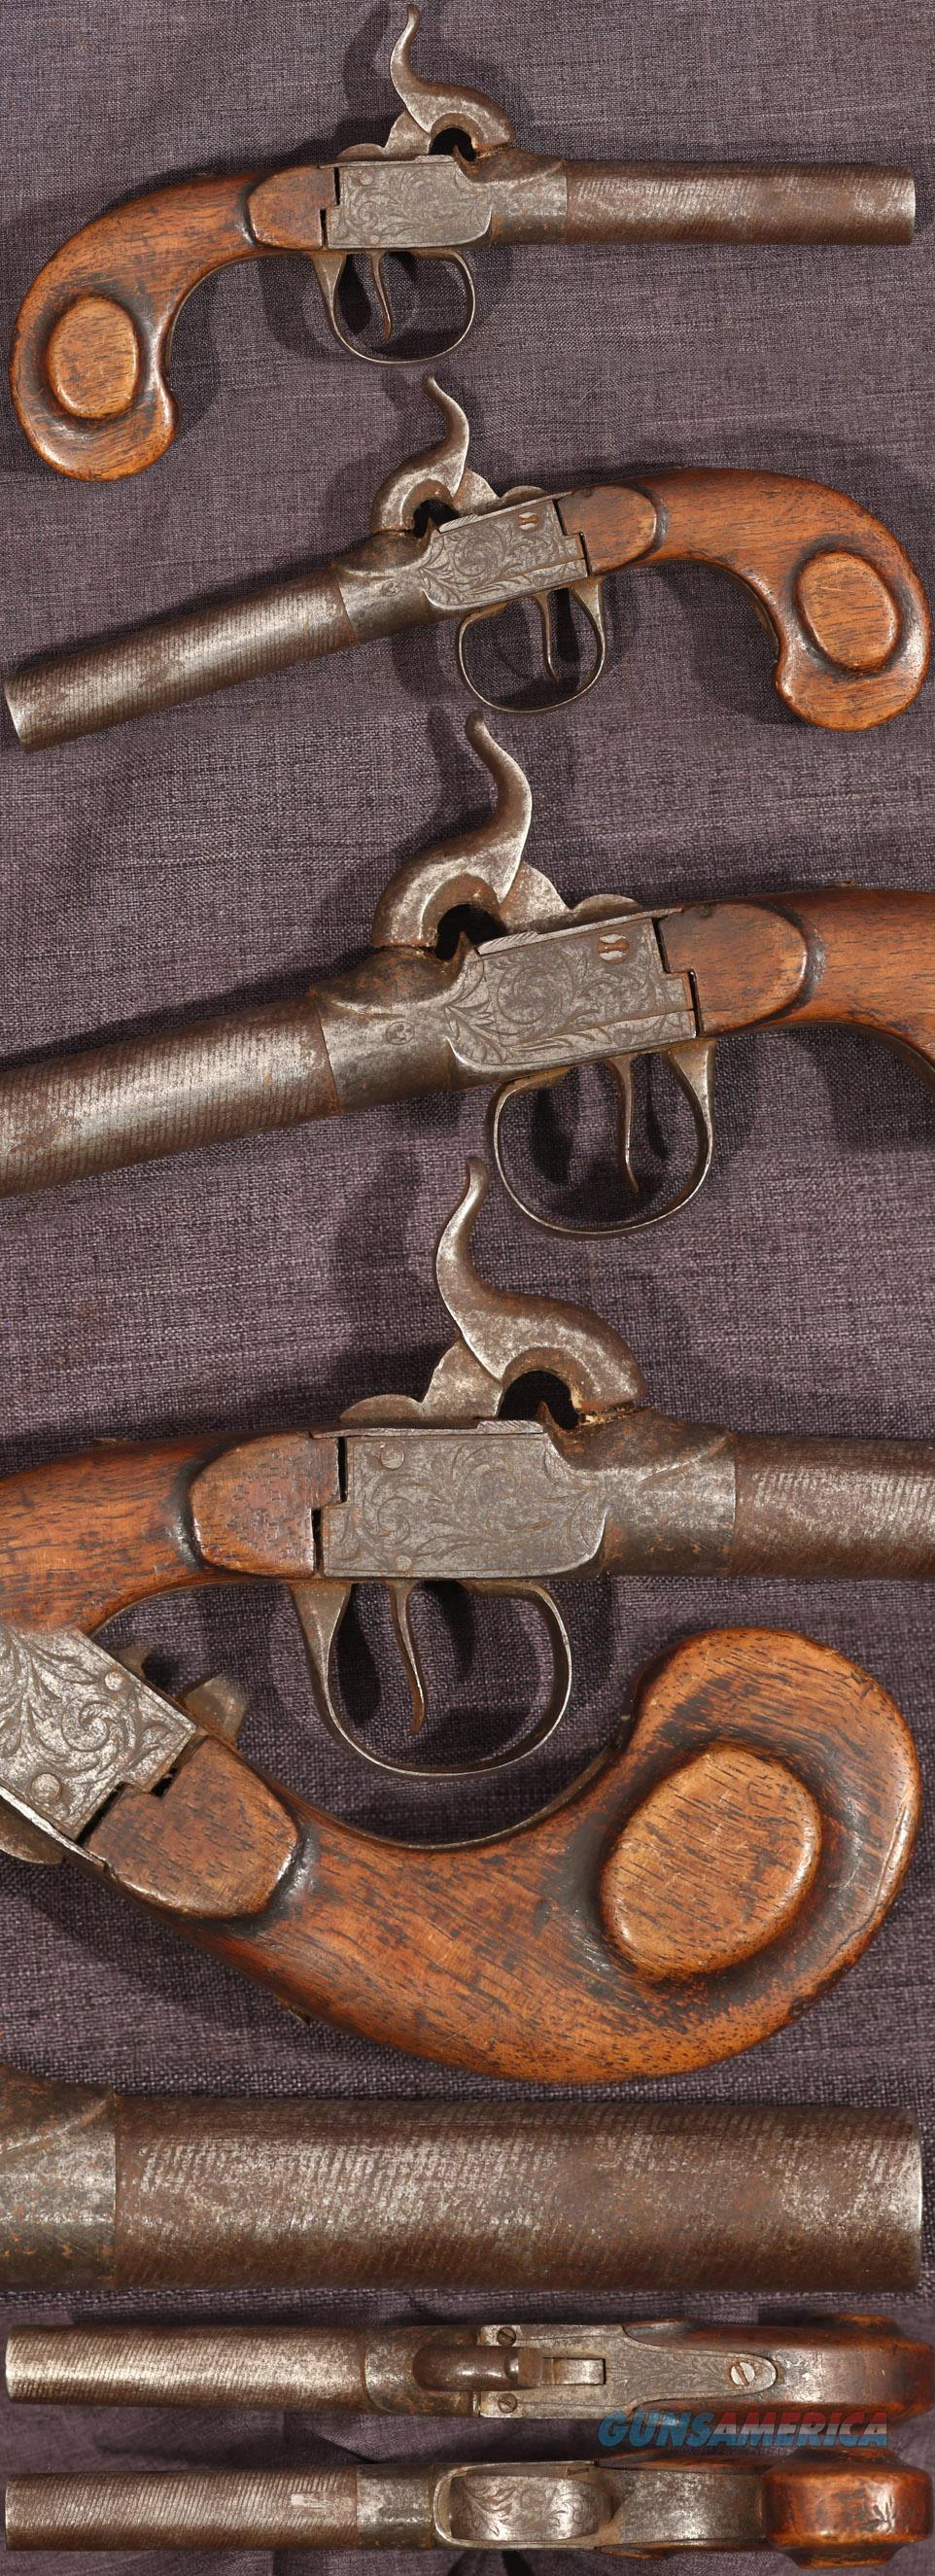 Belgian percussion boxlock pistol with striped barrel  Guns > Pistols > Muzzleloading Pre-1899 Pistols (perc)